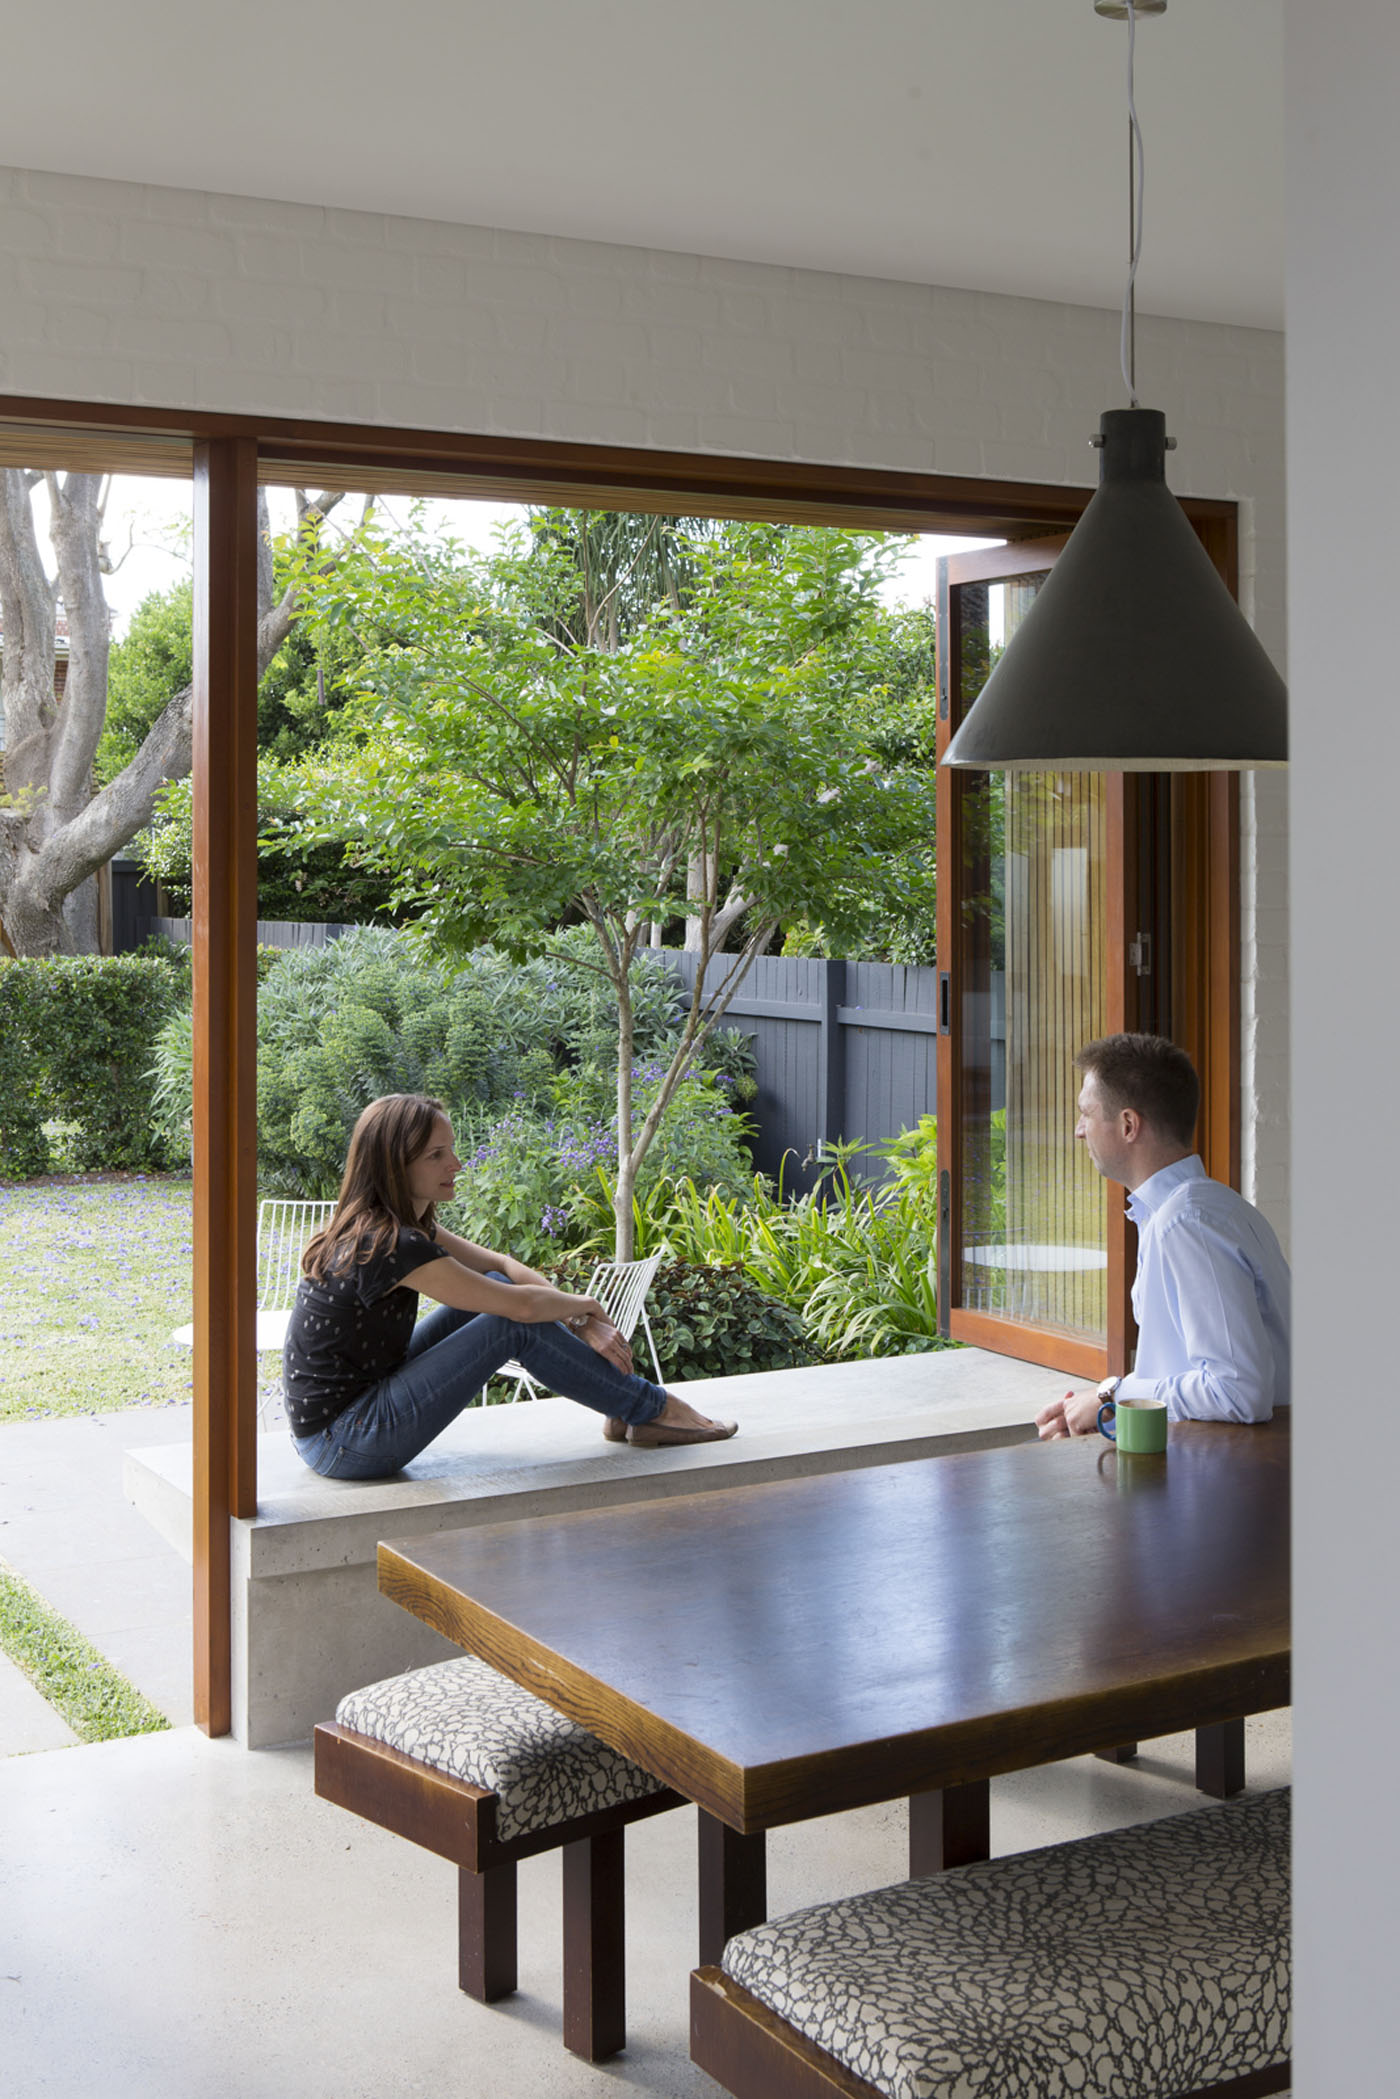 Denney House by Sam Crawford Architects, two people enjoying a chat in the open space between the dining room and the garden